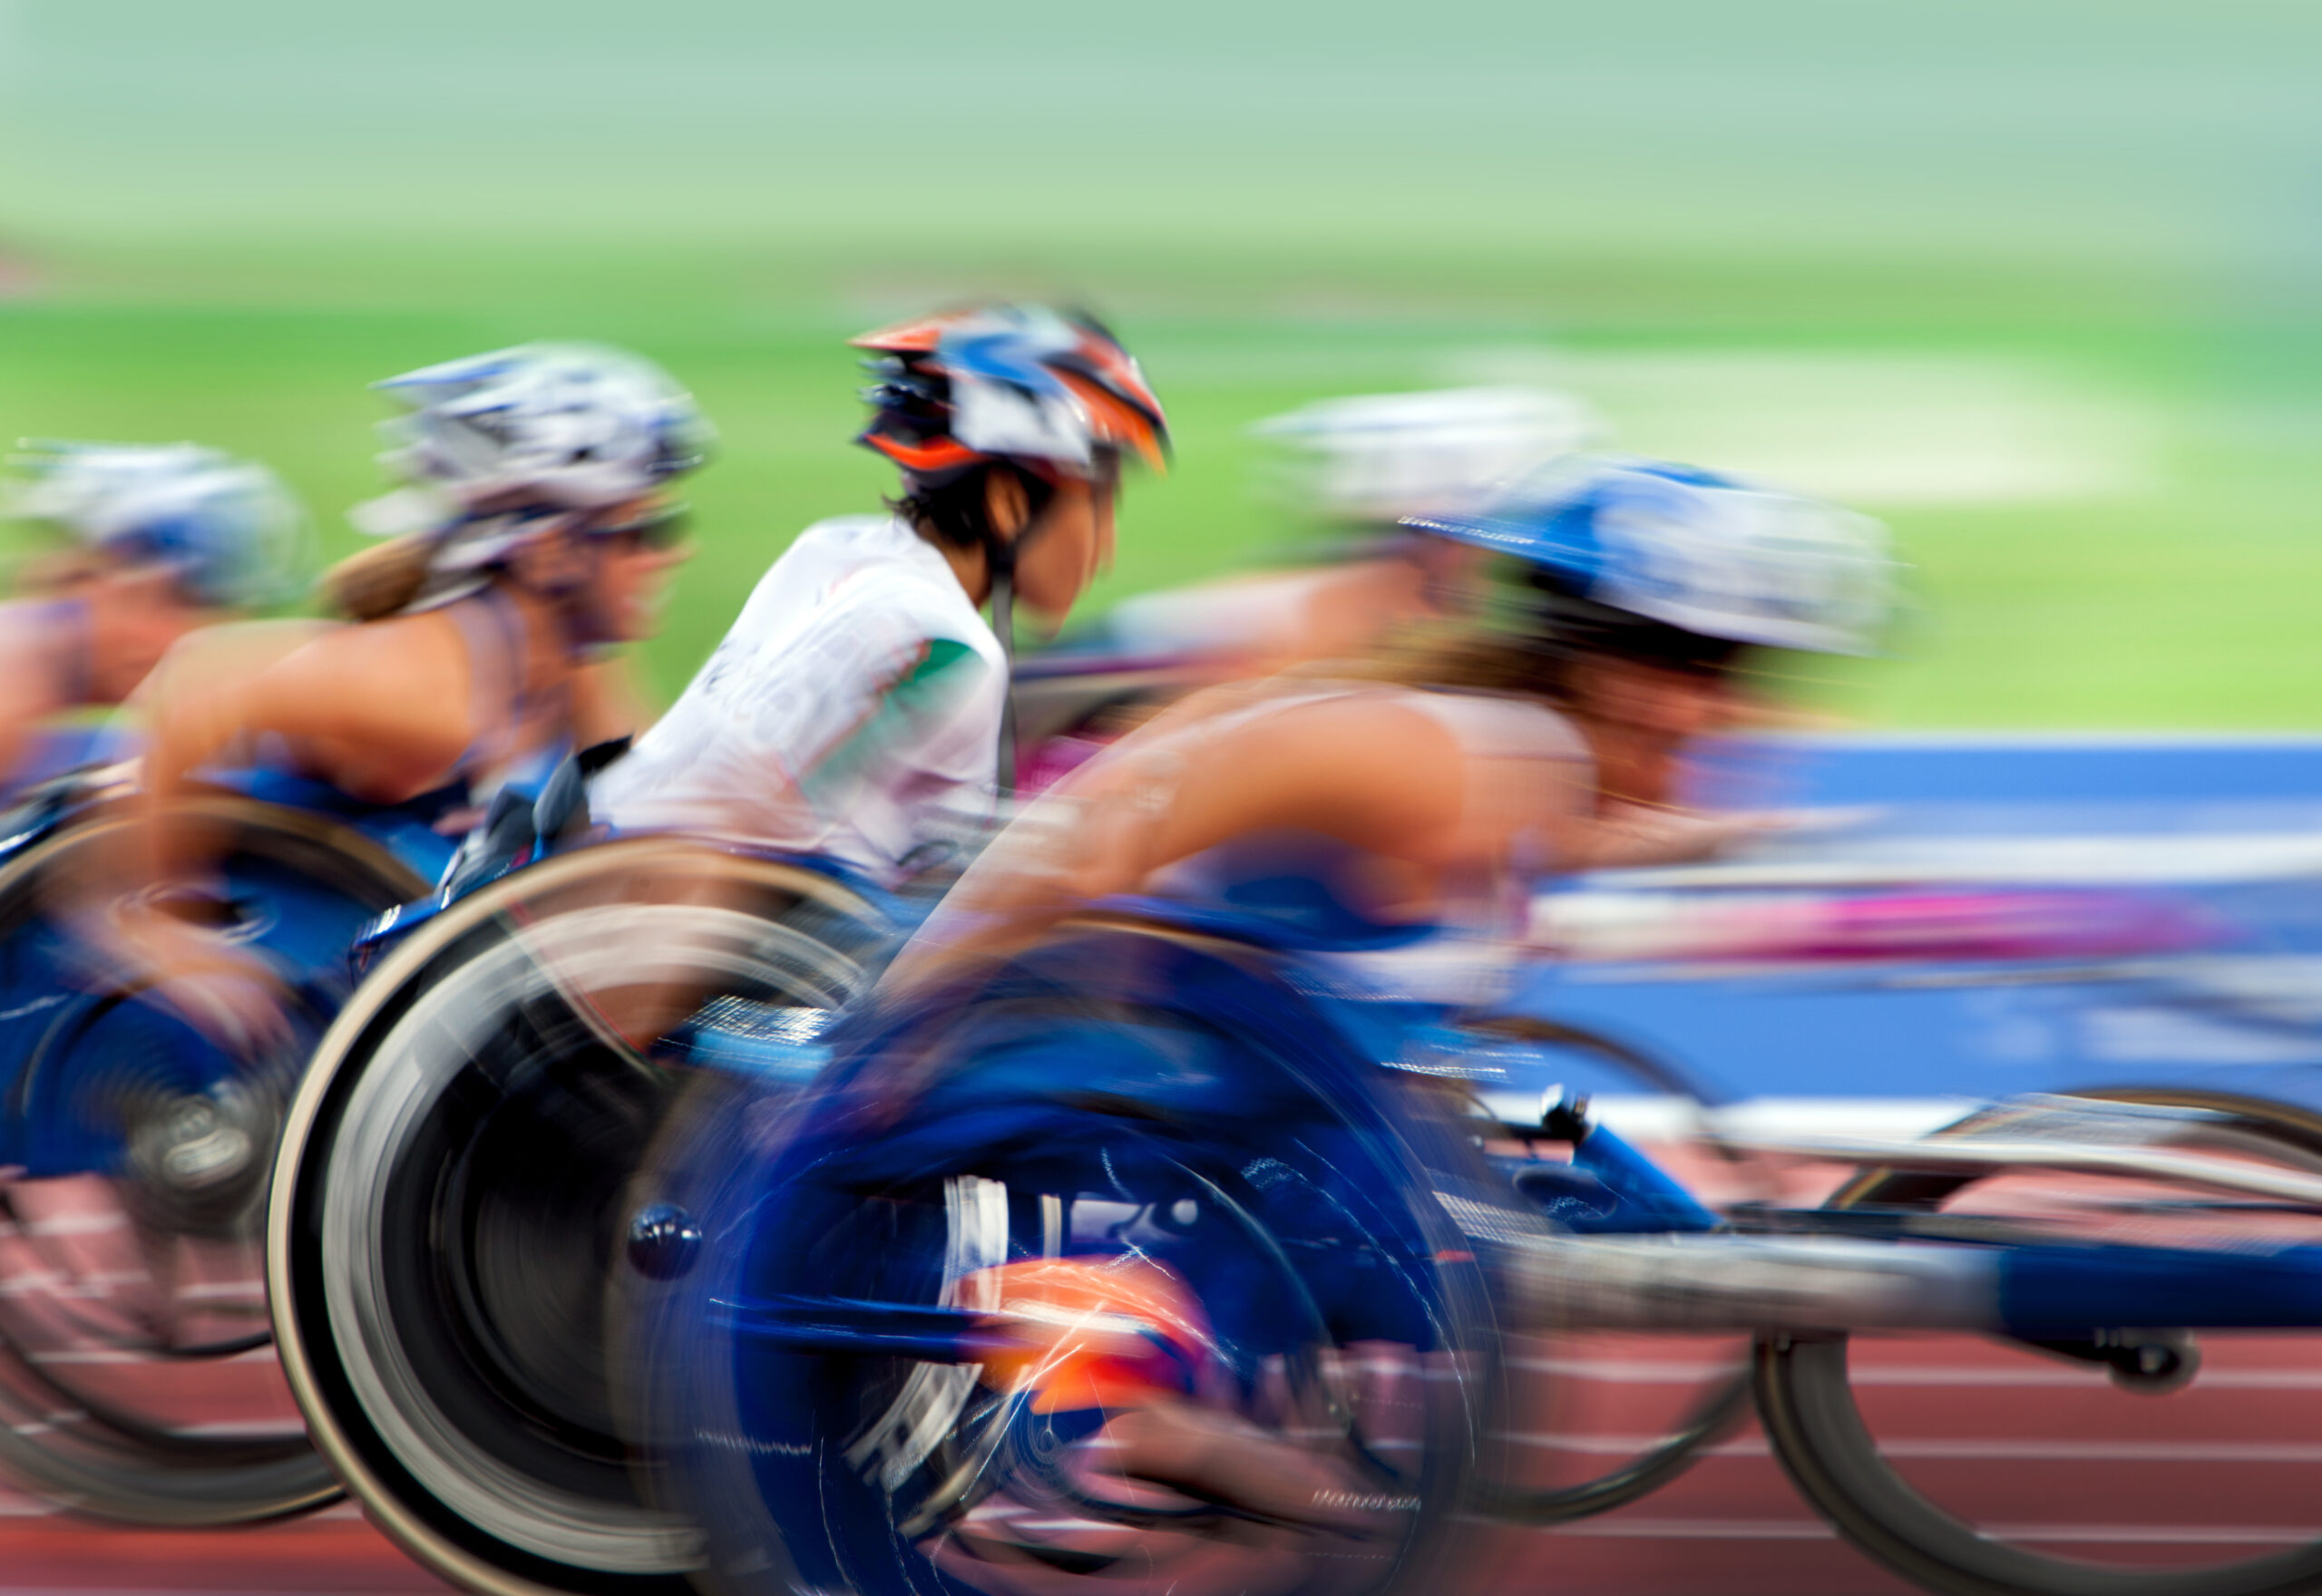 A record number of out athletes are participating in the Paralympics